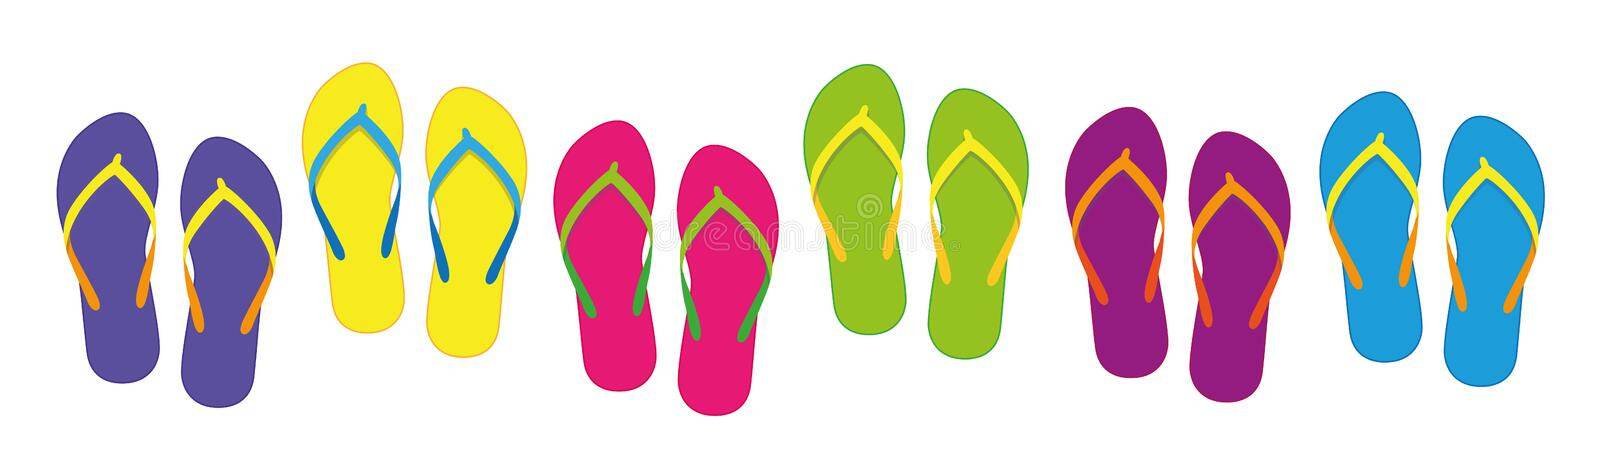 Set with colorful summer flip flops for beach holiday different colors royalty free illustration